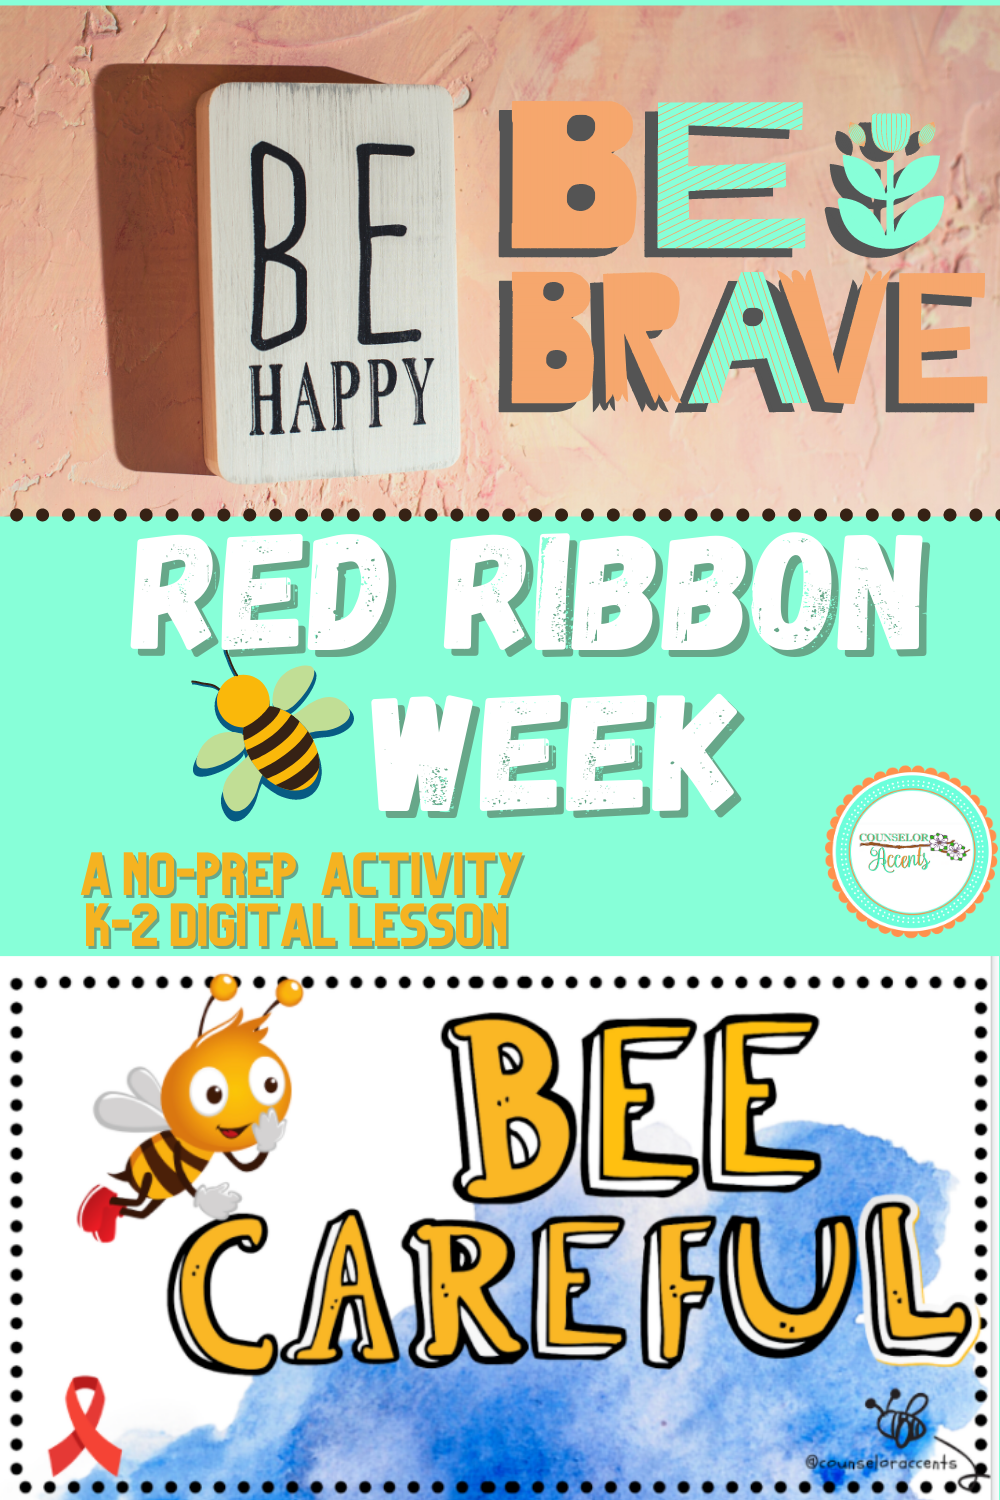 Red Ribbon Activity Bee Careful Red Ribbon Week Red Ribbon First Year Teaching [ 1500 x 1000 Pixel ]